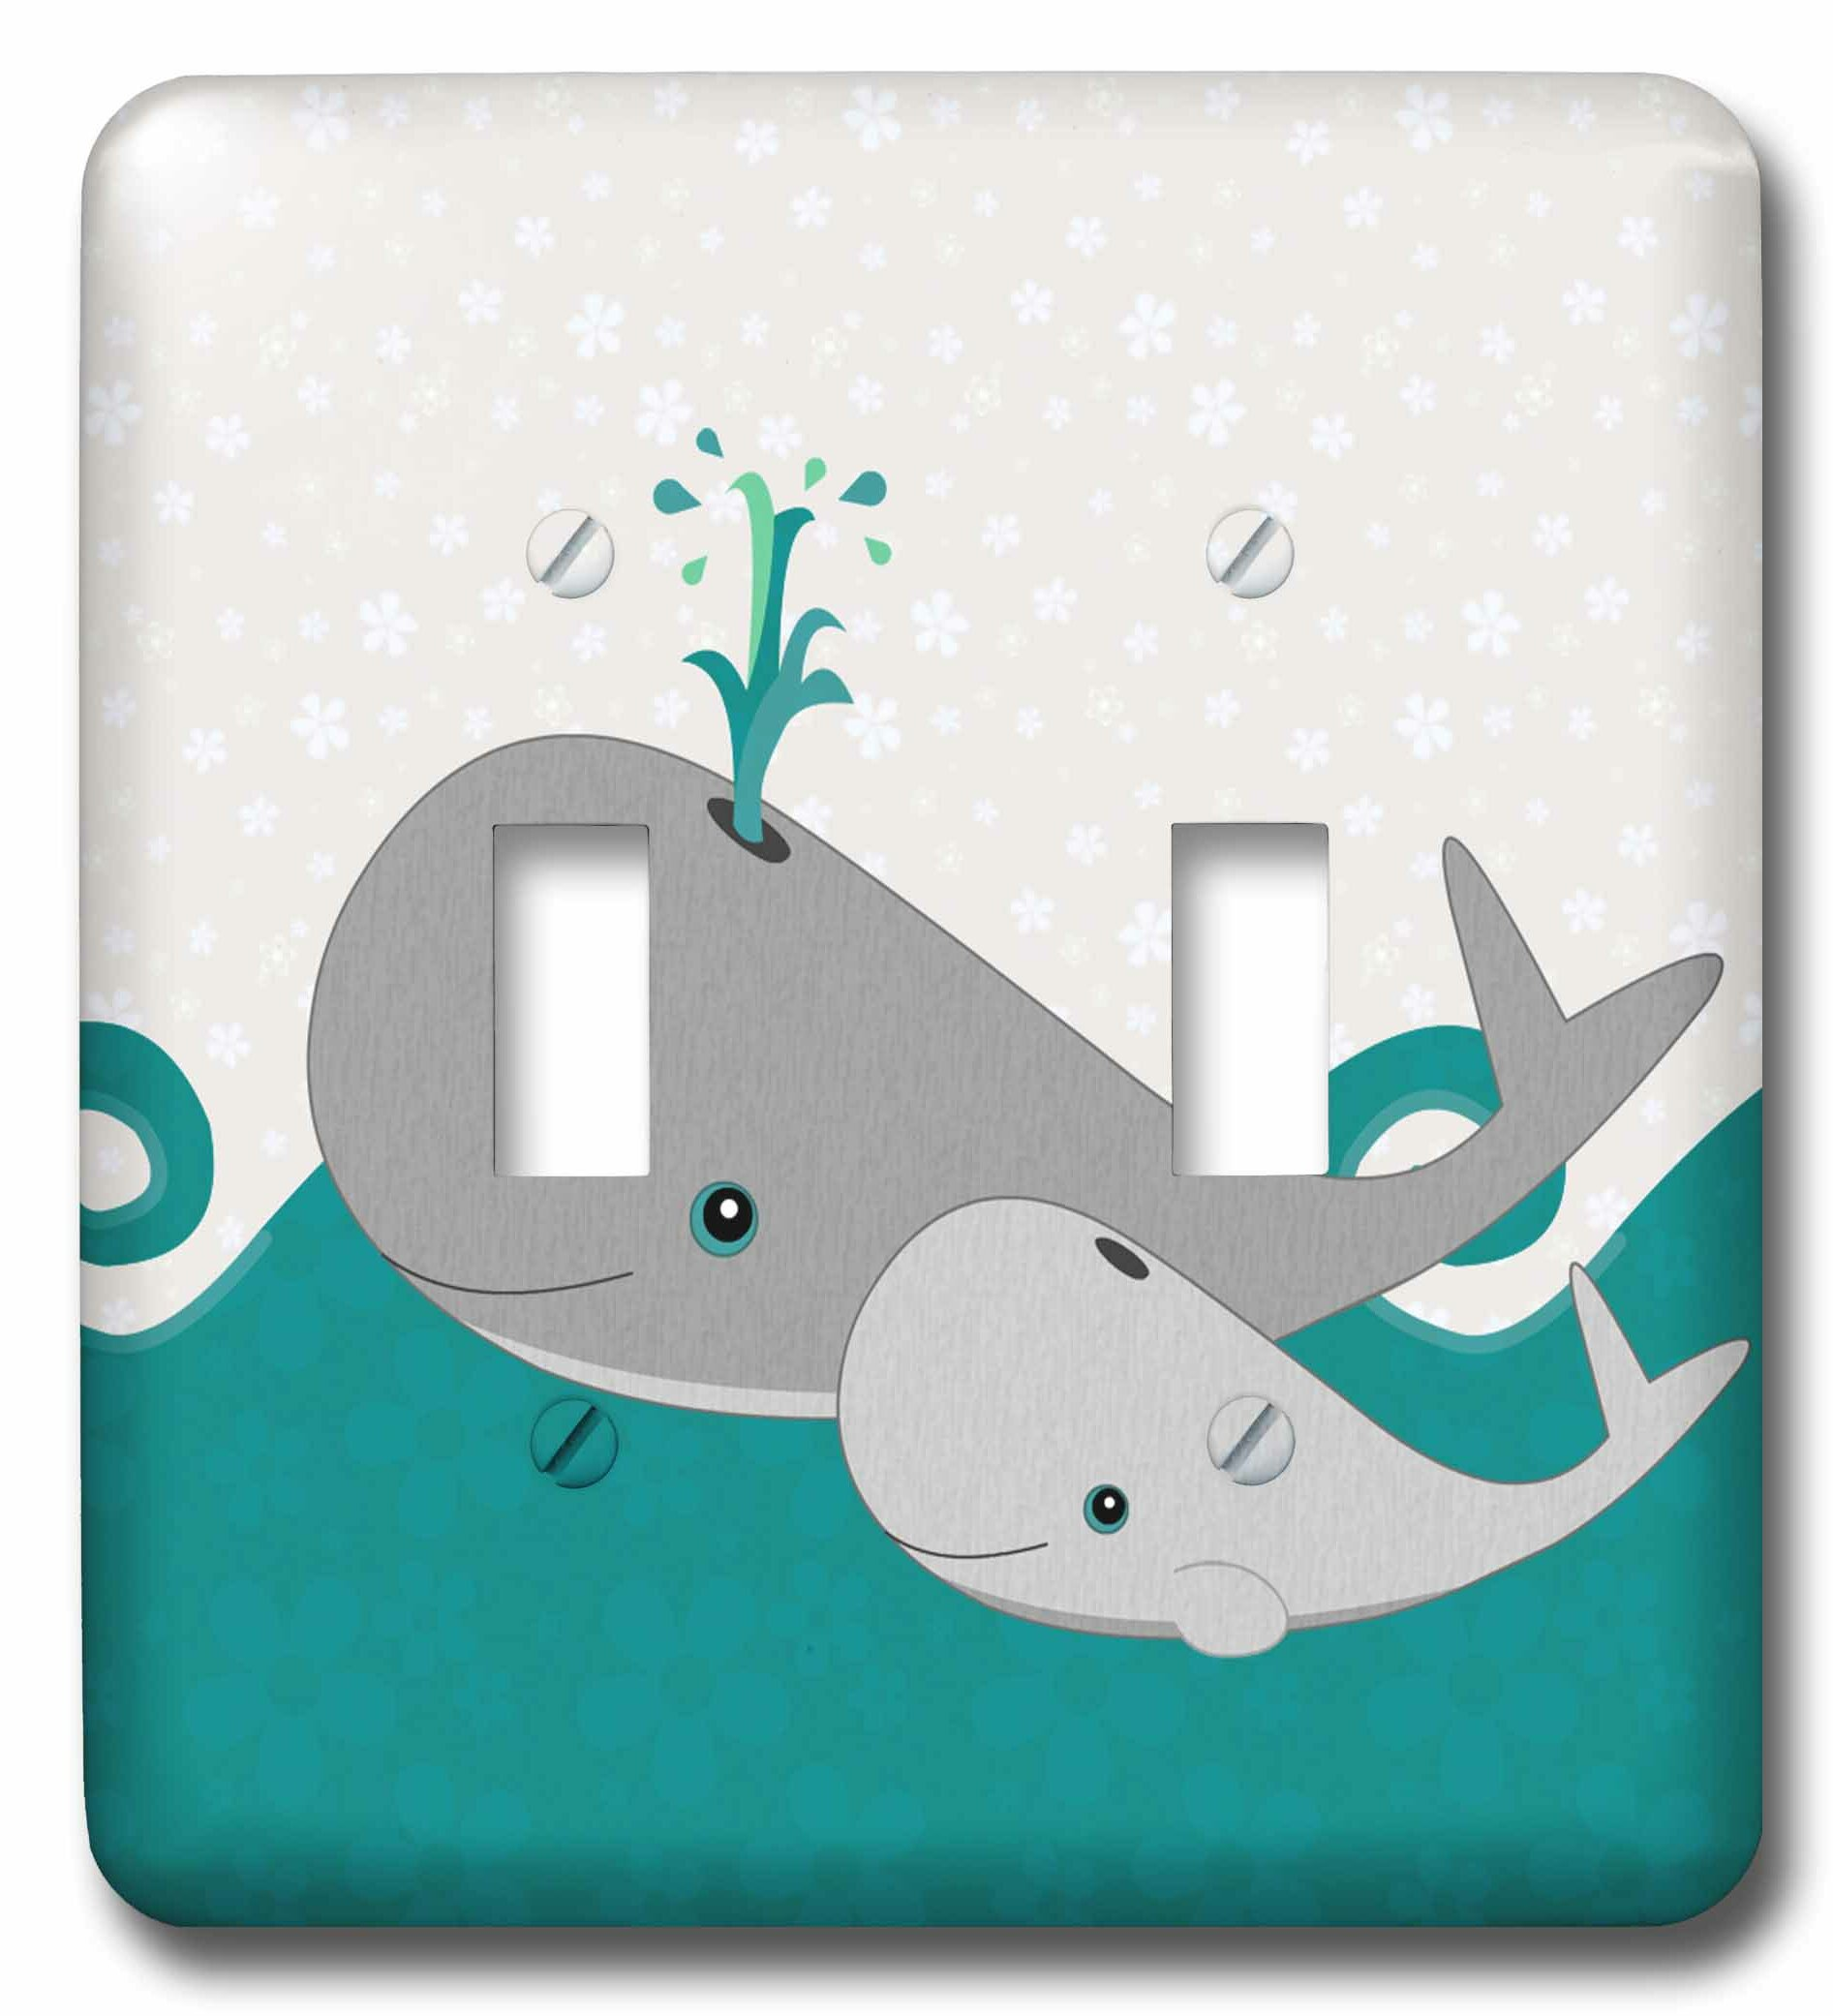 3drose Cute Whale And Baby On The Ocean 2 Gang Toggle Light Switch Wall Plate